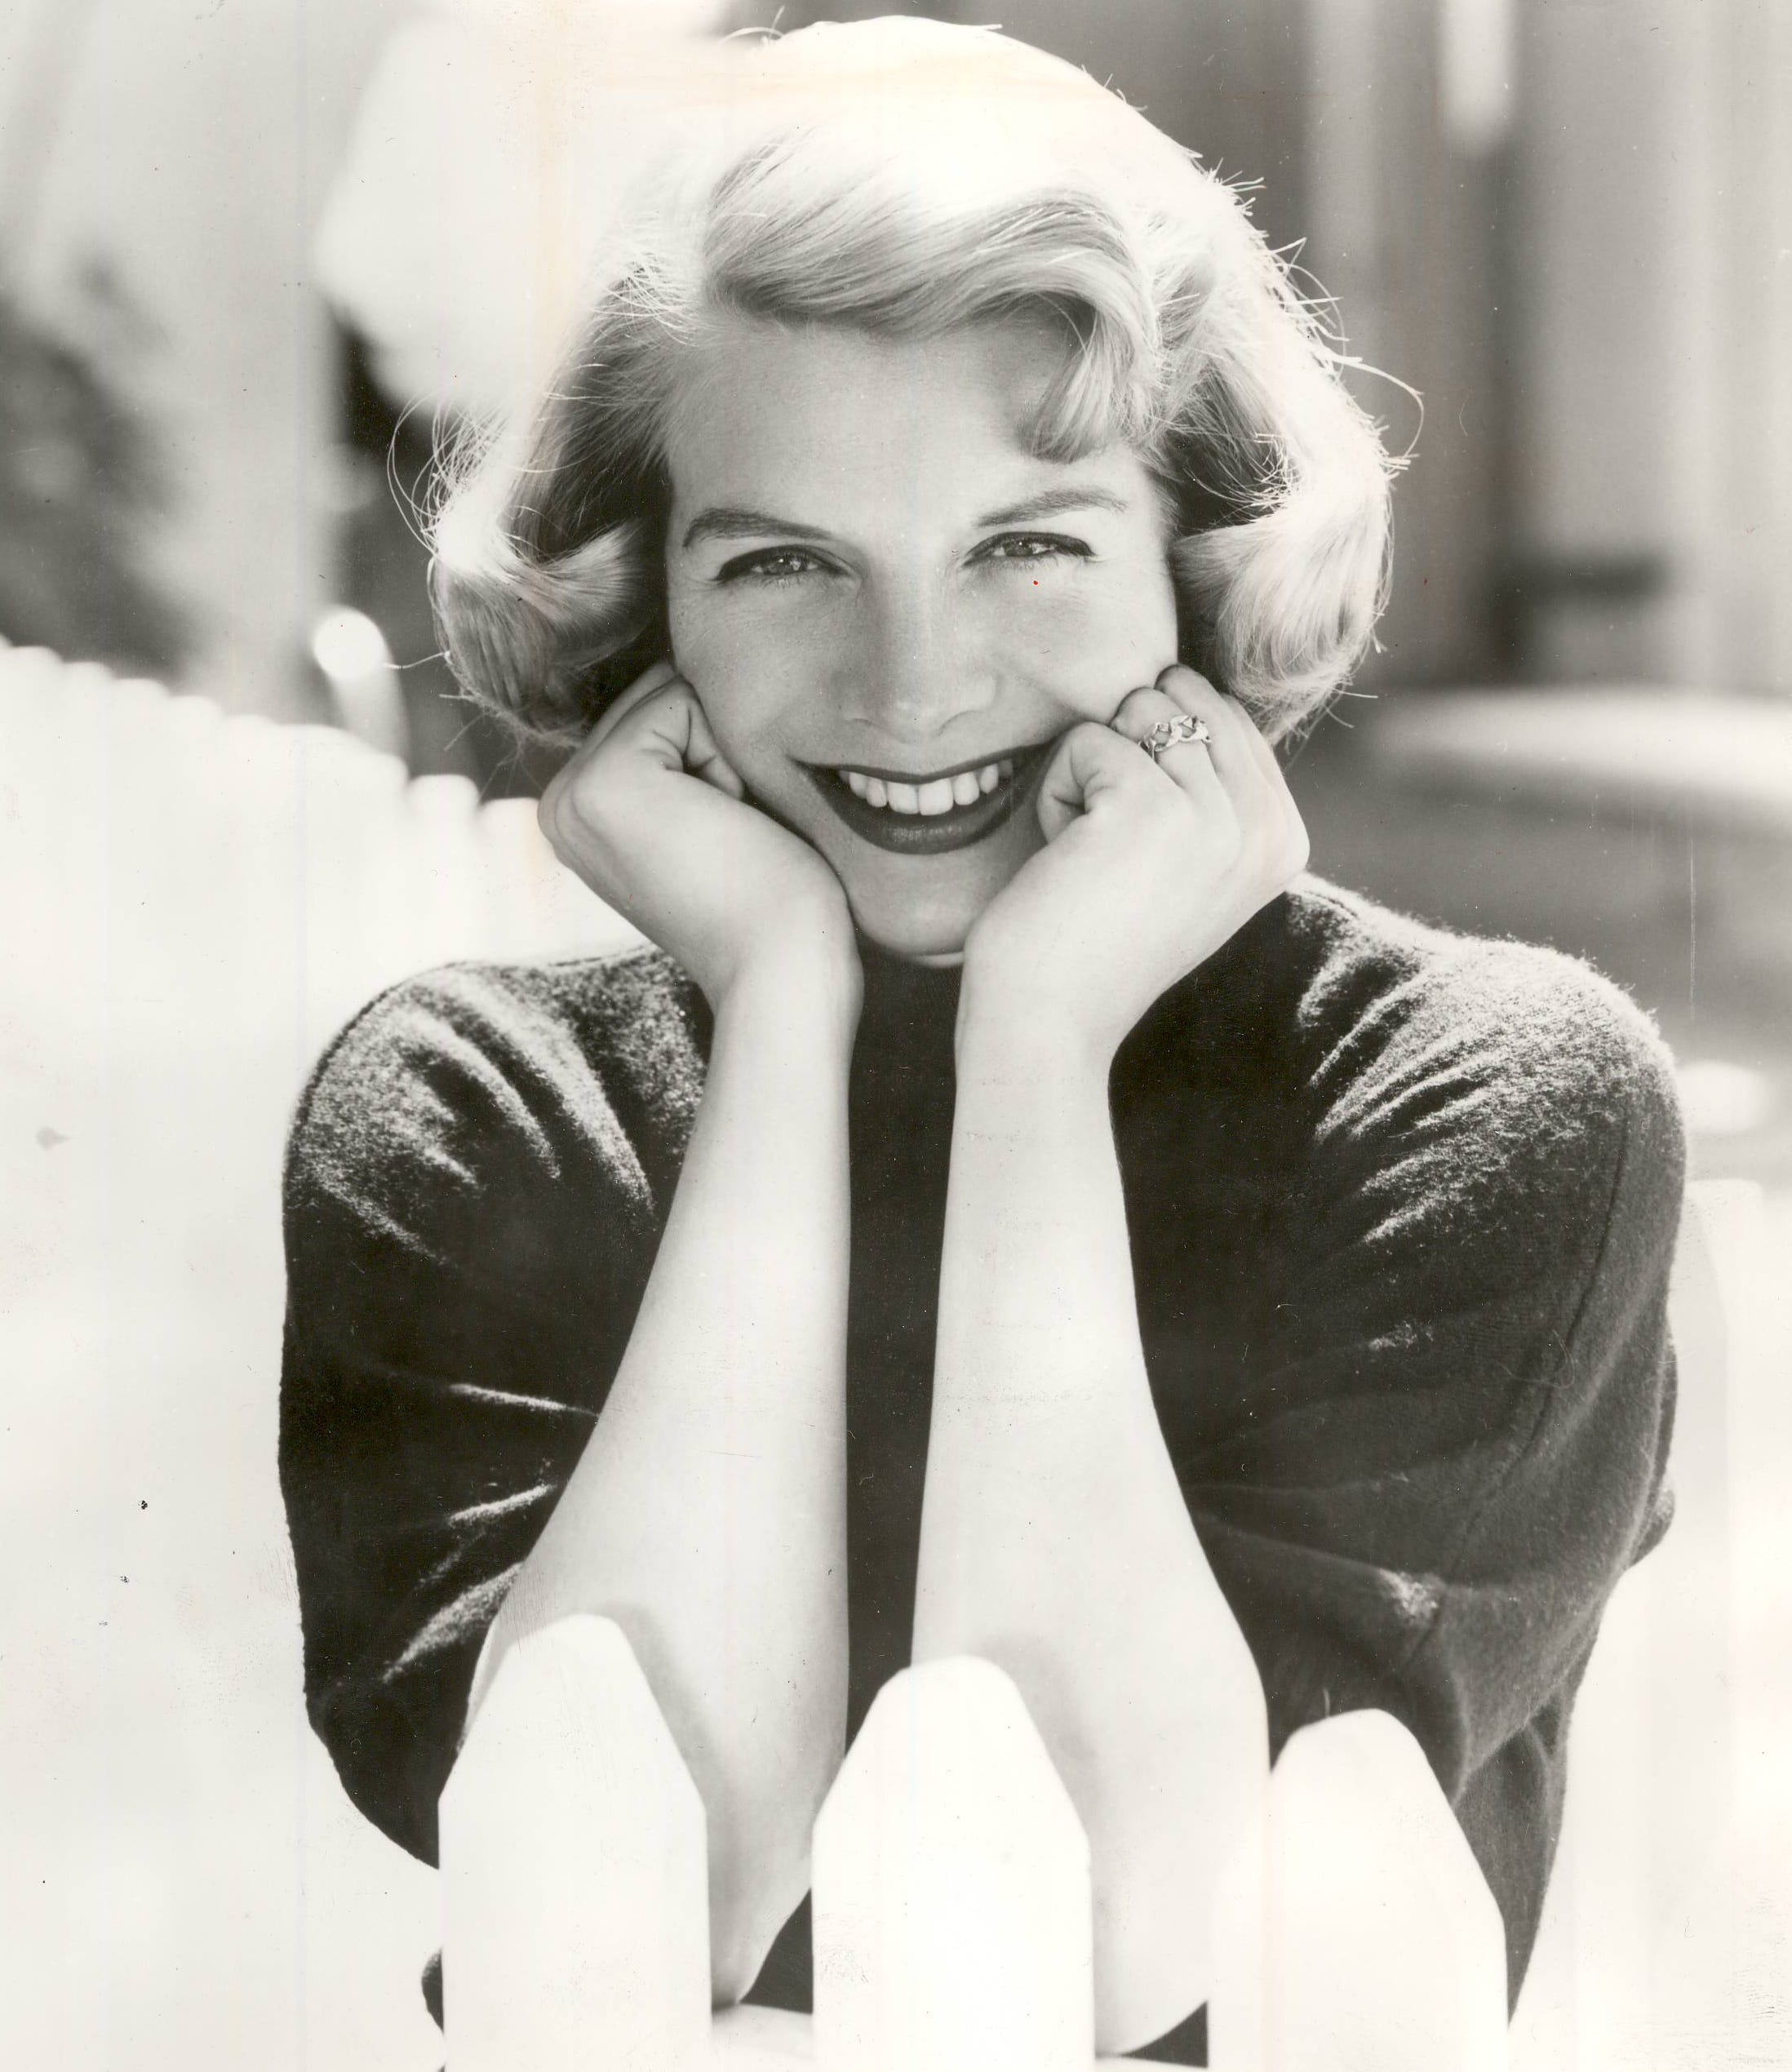 Gallery: Remembering Rosemary Clooney